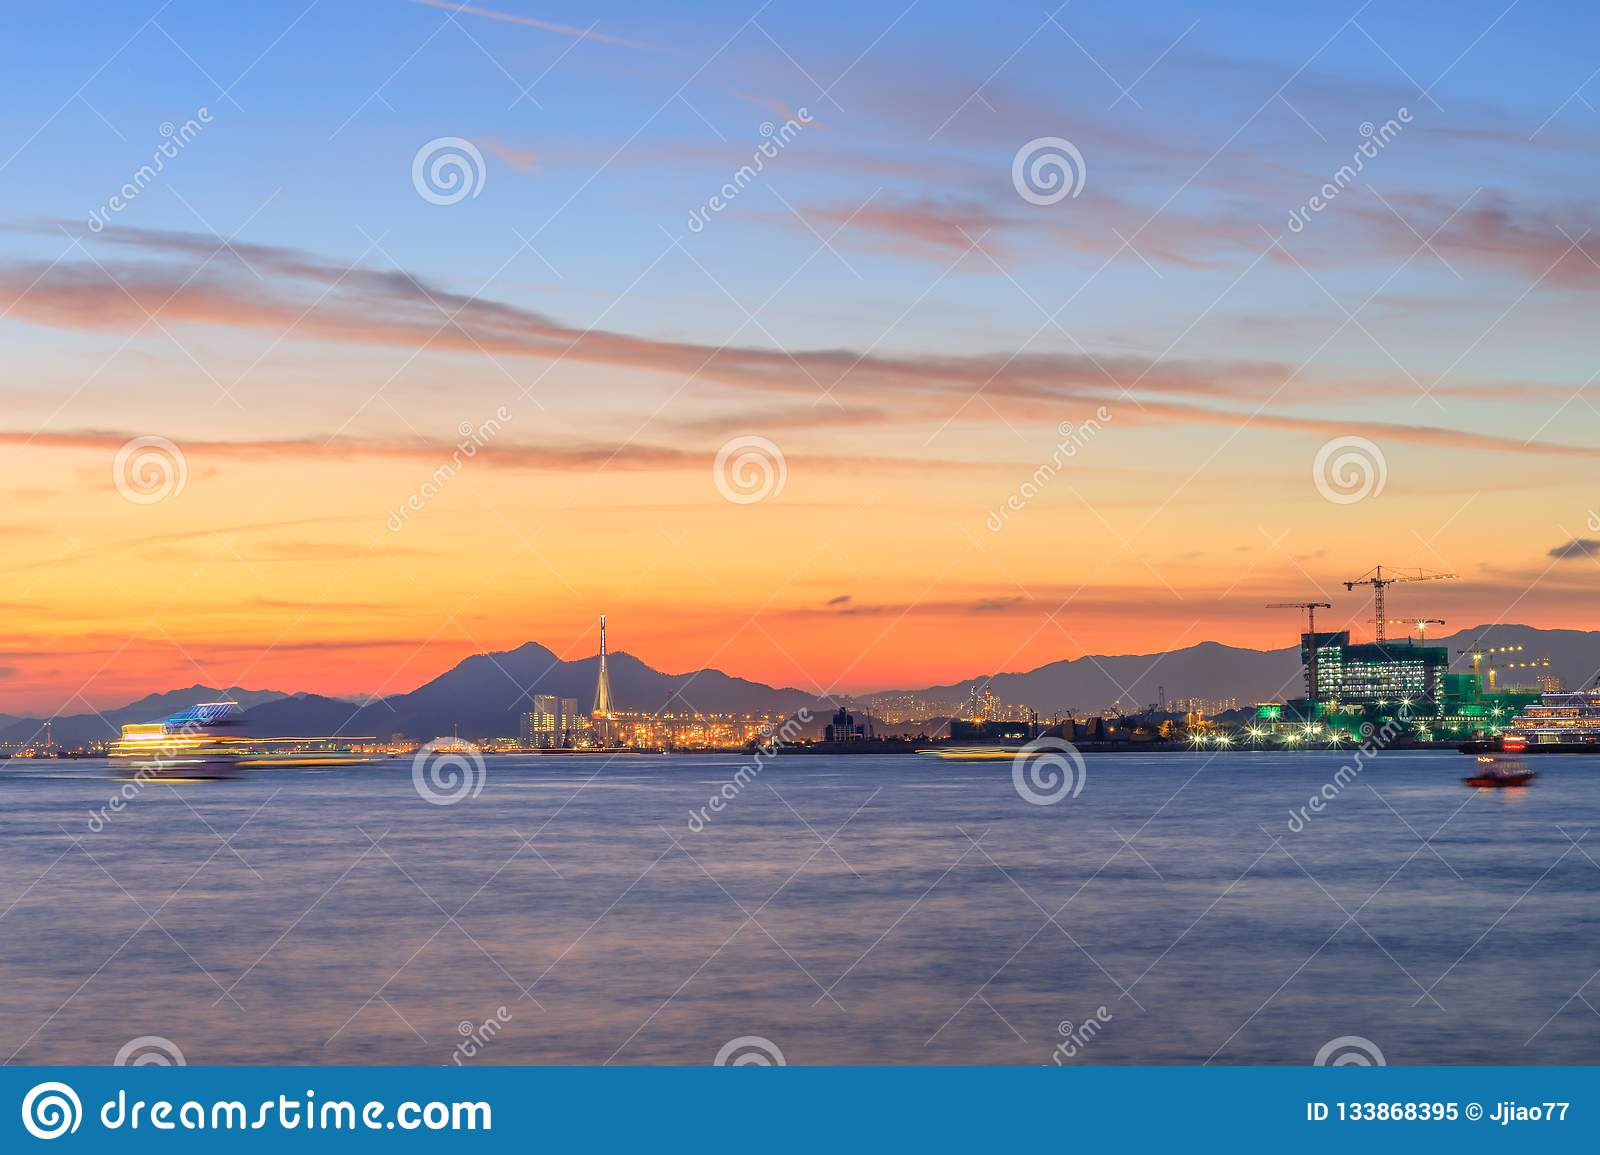 Evening and night view of magnificent cityscape on both sides of Victoria Harbour Hong kong